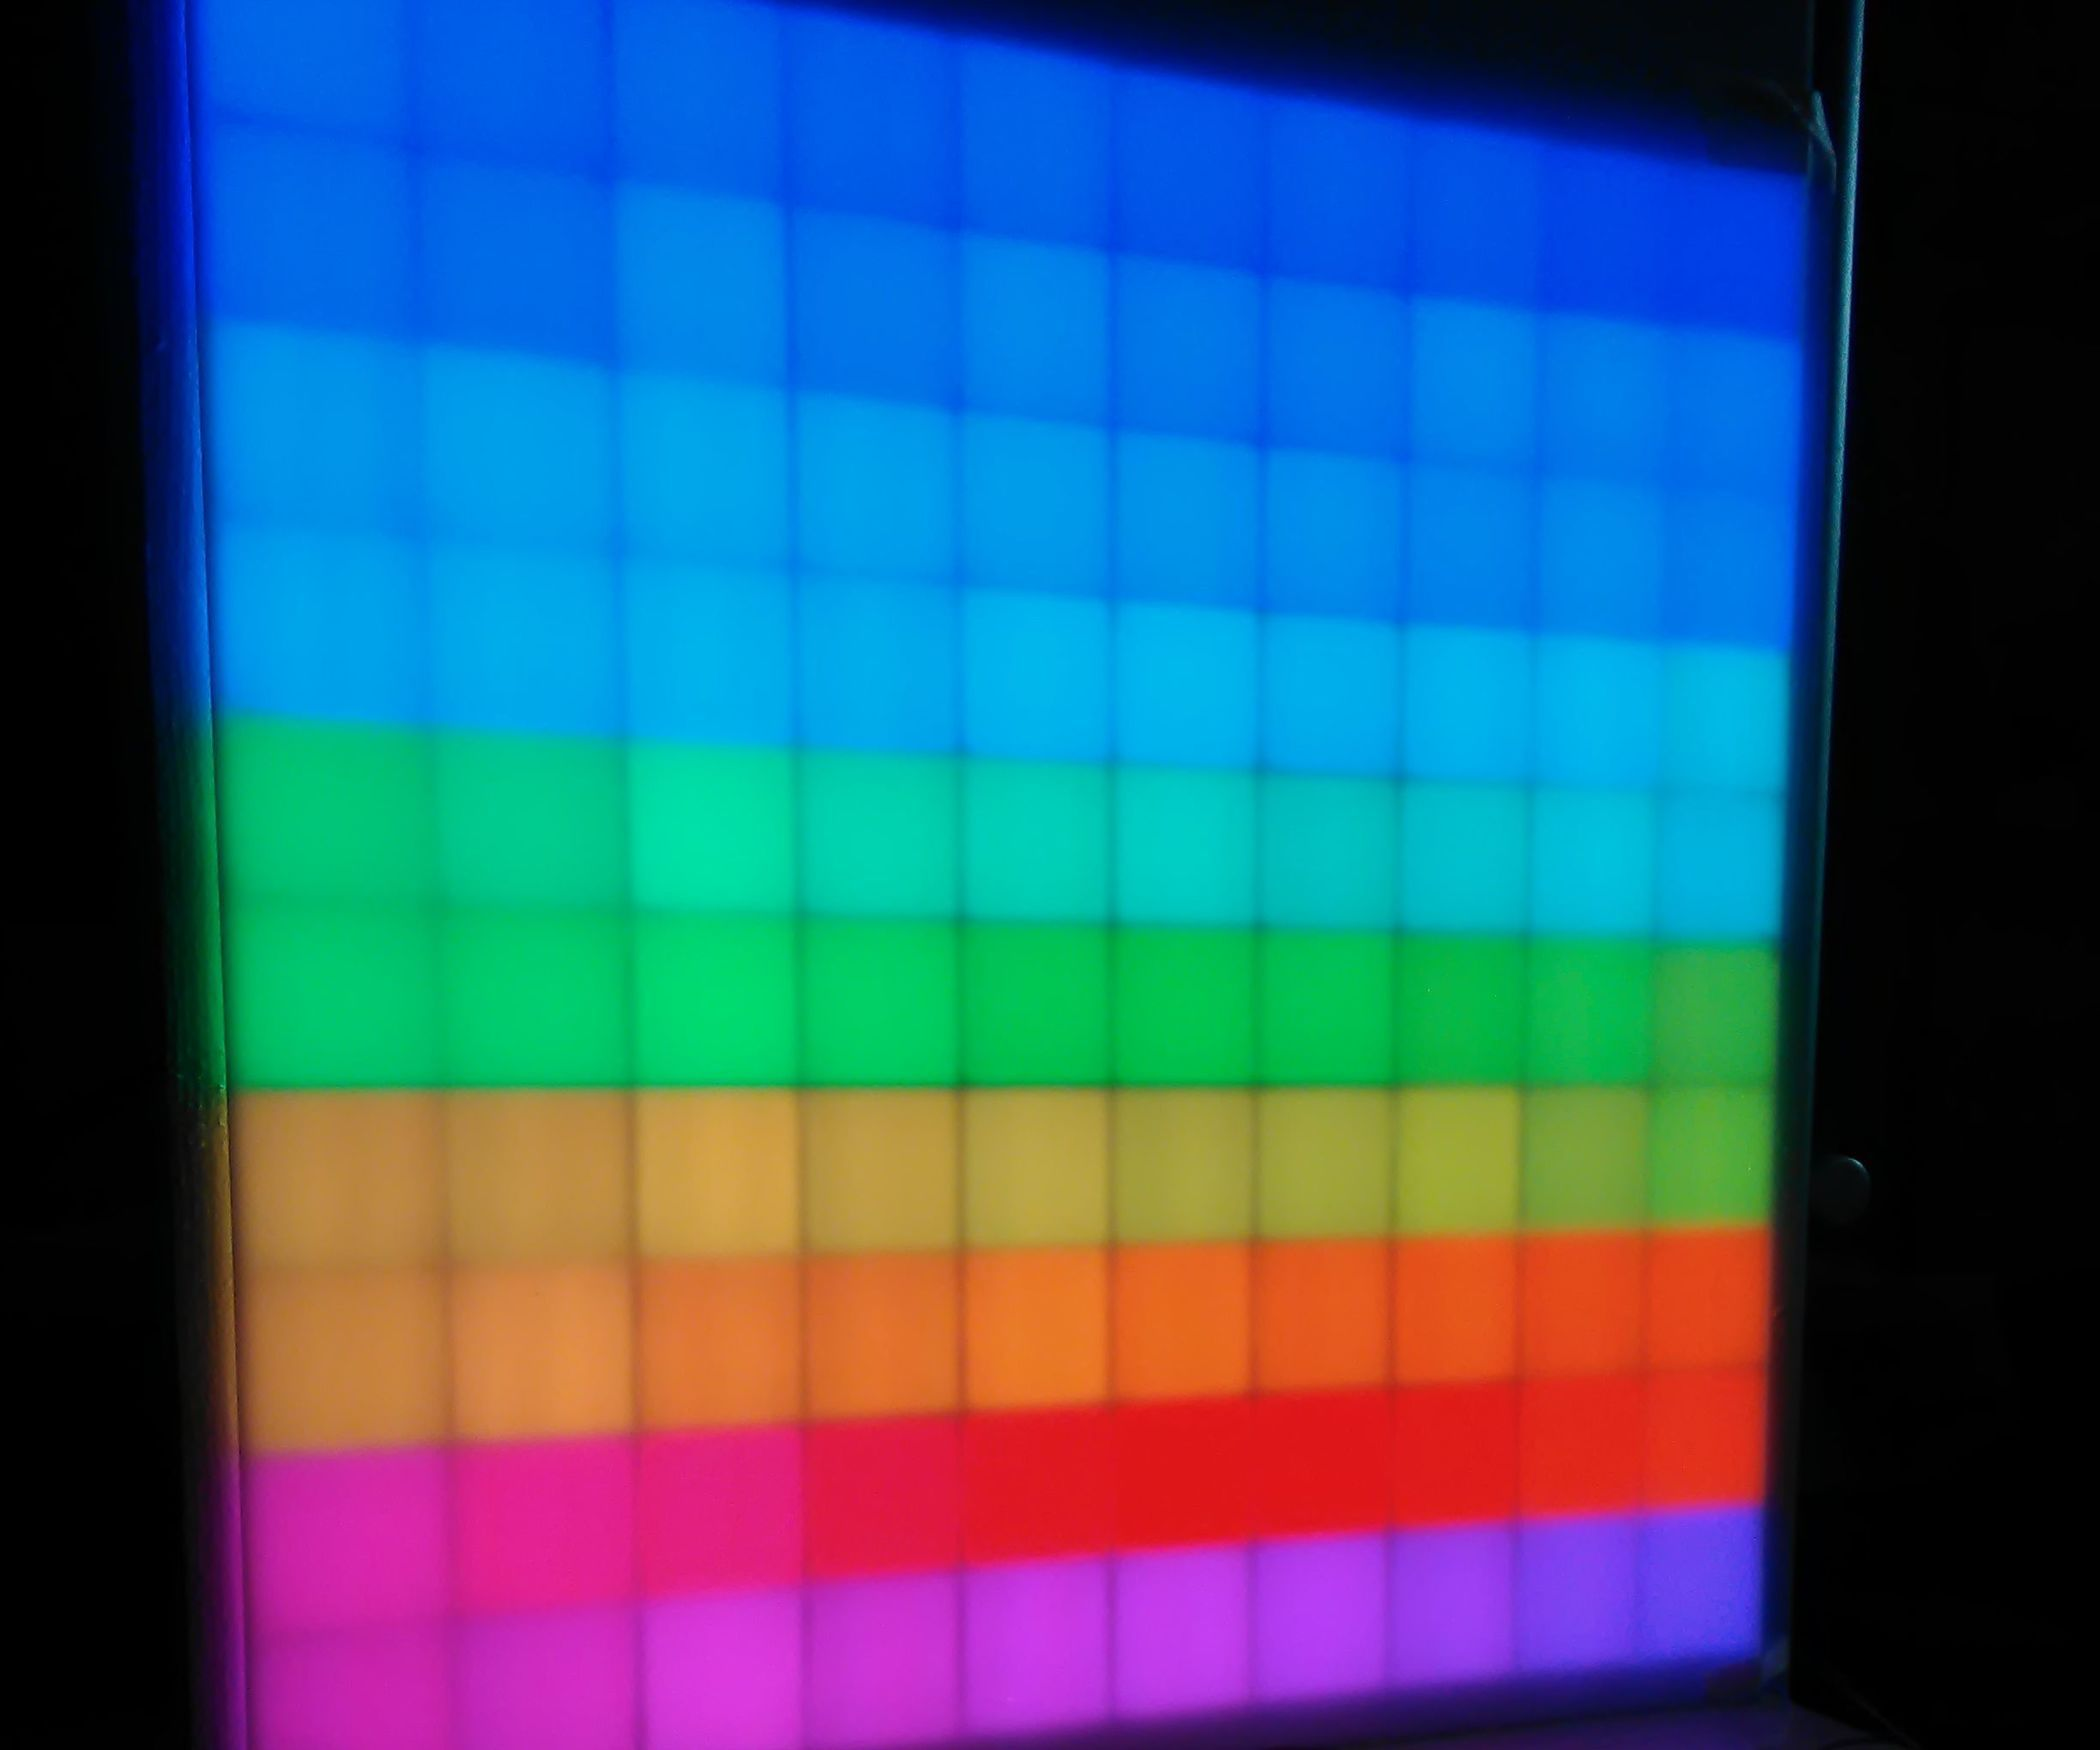 Interactive Rgb Led Matrix Controlled By Twitch Chat Led Matrix Rgb Led Matrix